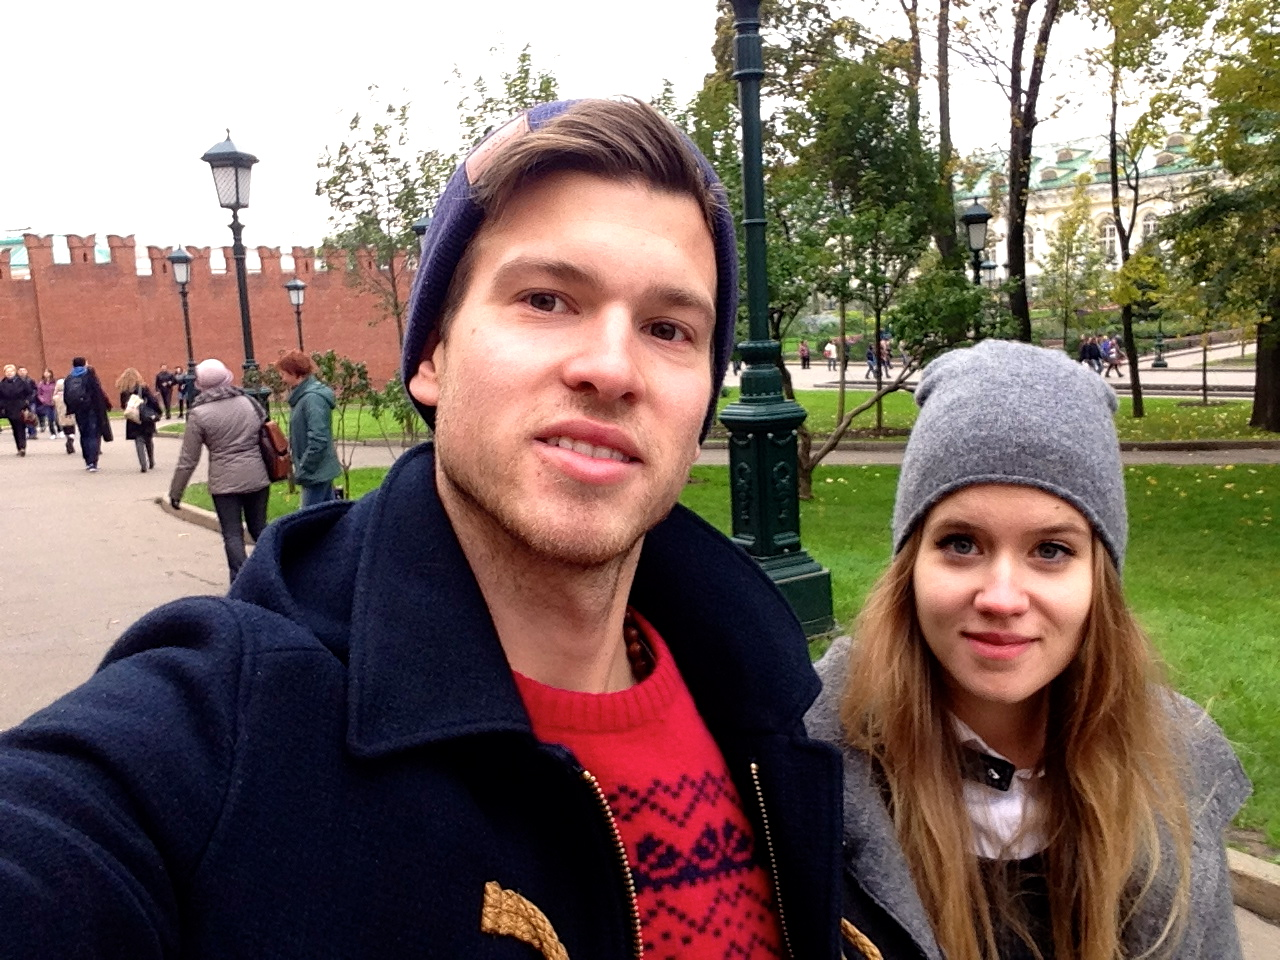 ...strolling around on the outside of the kremlin...